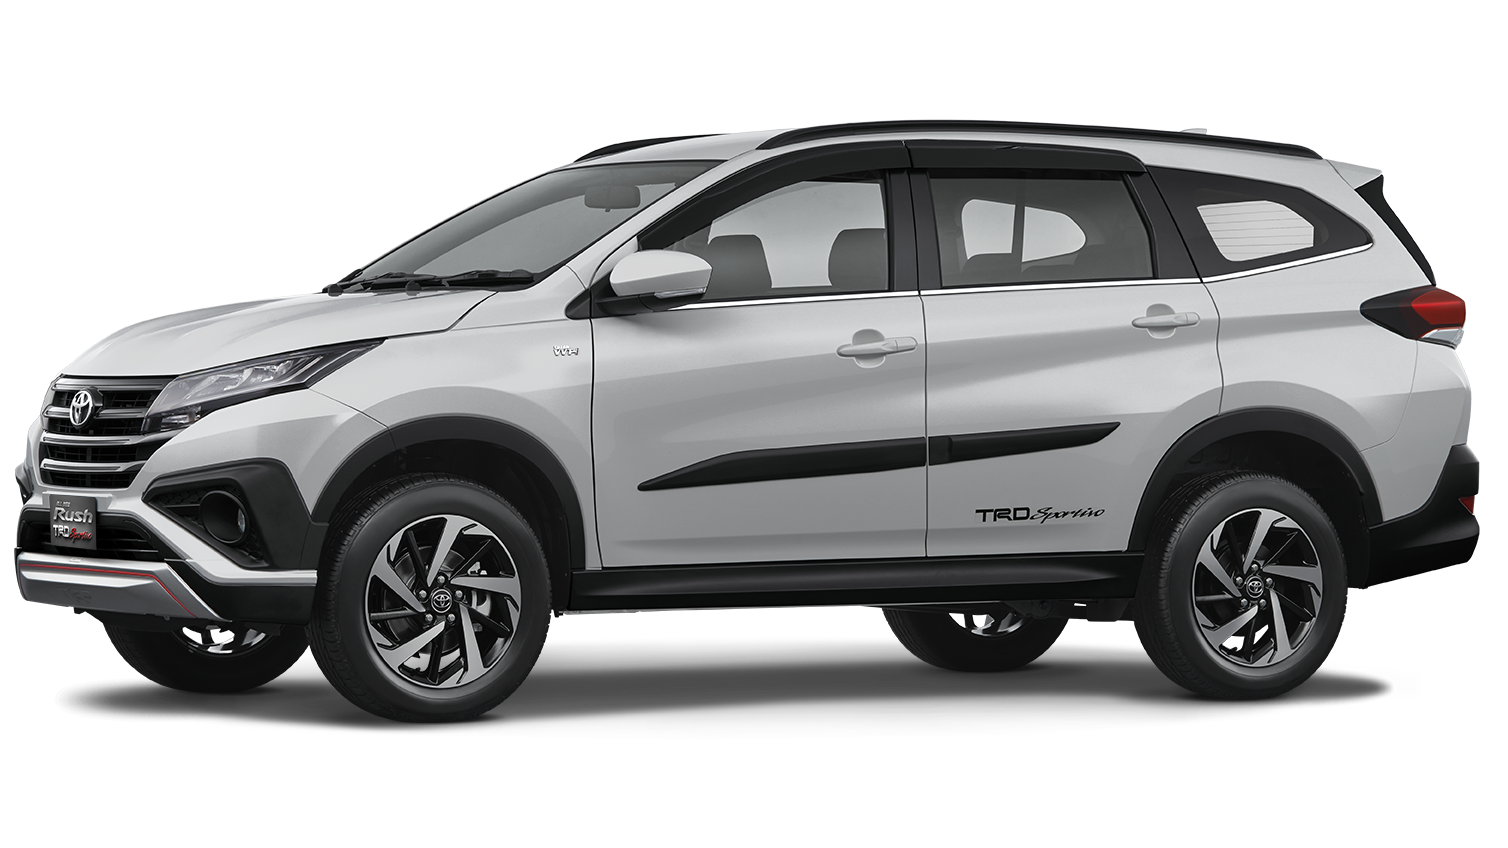 Toyota Rush Release Date In India >> 2018 Toyota Rush - New Car Release Date and Review 2018 | Amanda Felicia